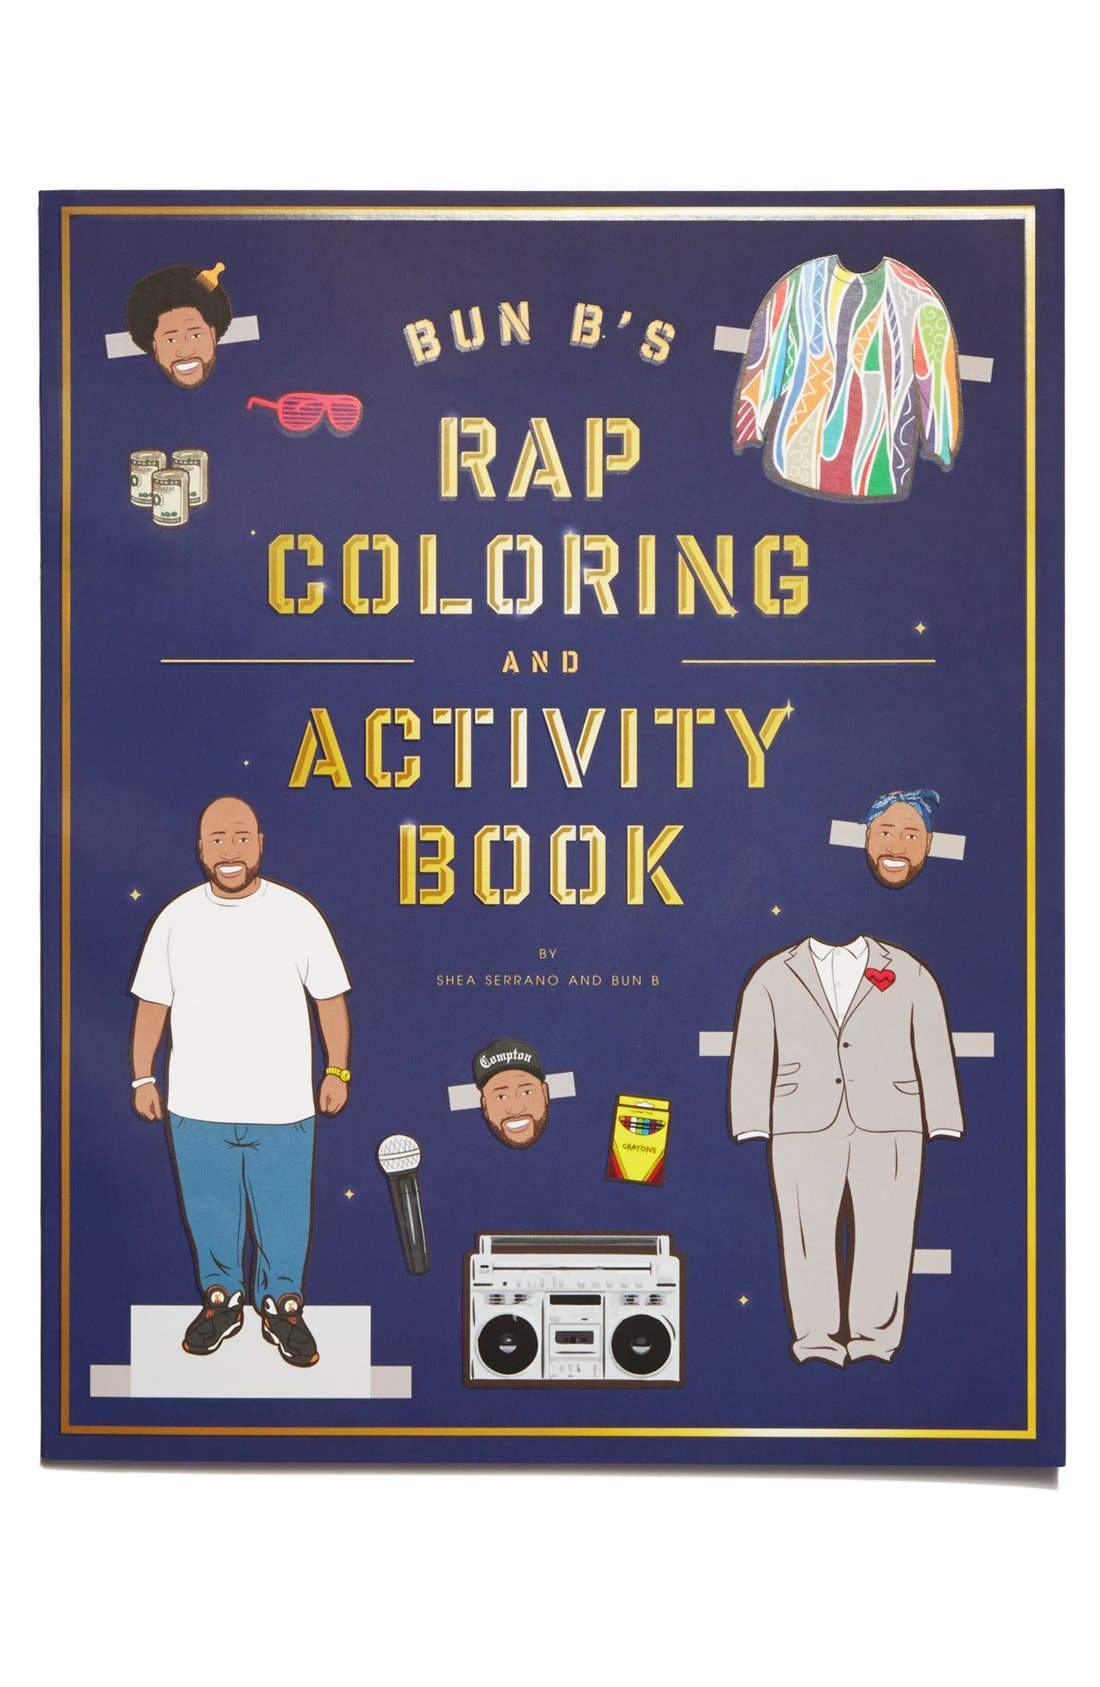 Alternate Image 1 Selected - Bun B's Rap Coloring and Activity Book